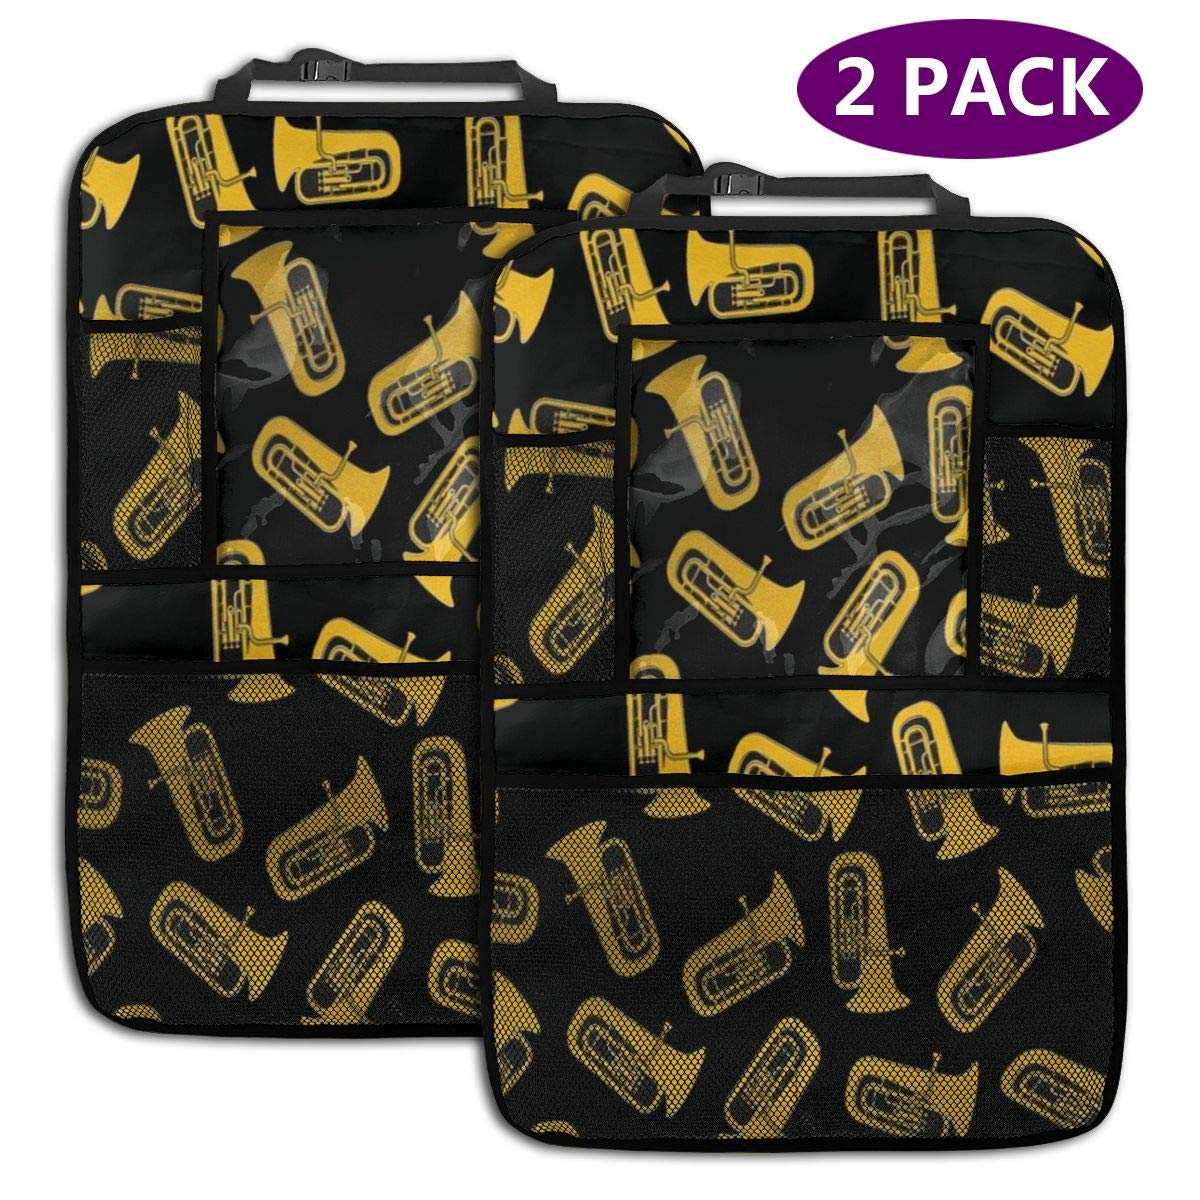 QF6FEICHAN Isolated Tuba Musical Instrument Car Seat Back Protectors with Storage Pockets Kick Mats Accessories for Kids and Toddlers by QF6FEICHAN